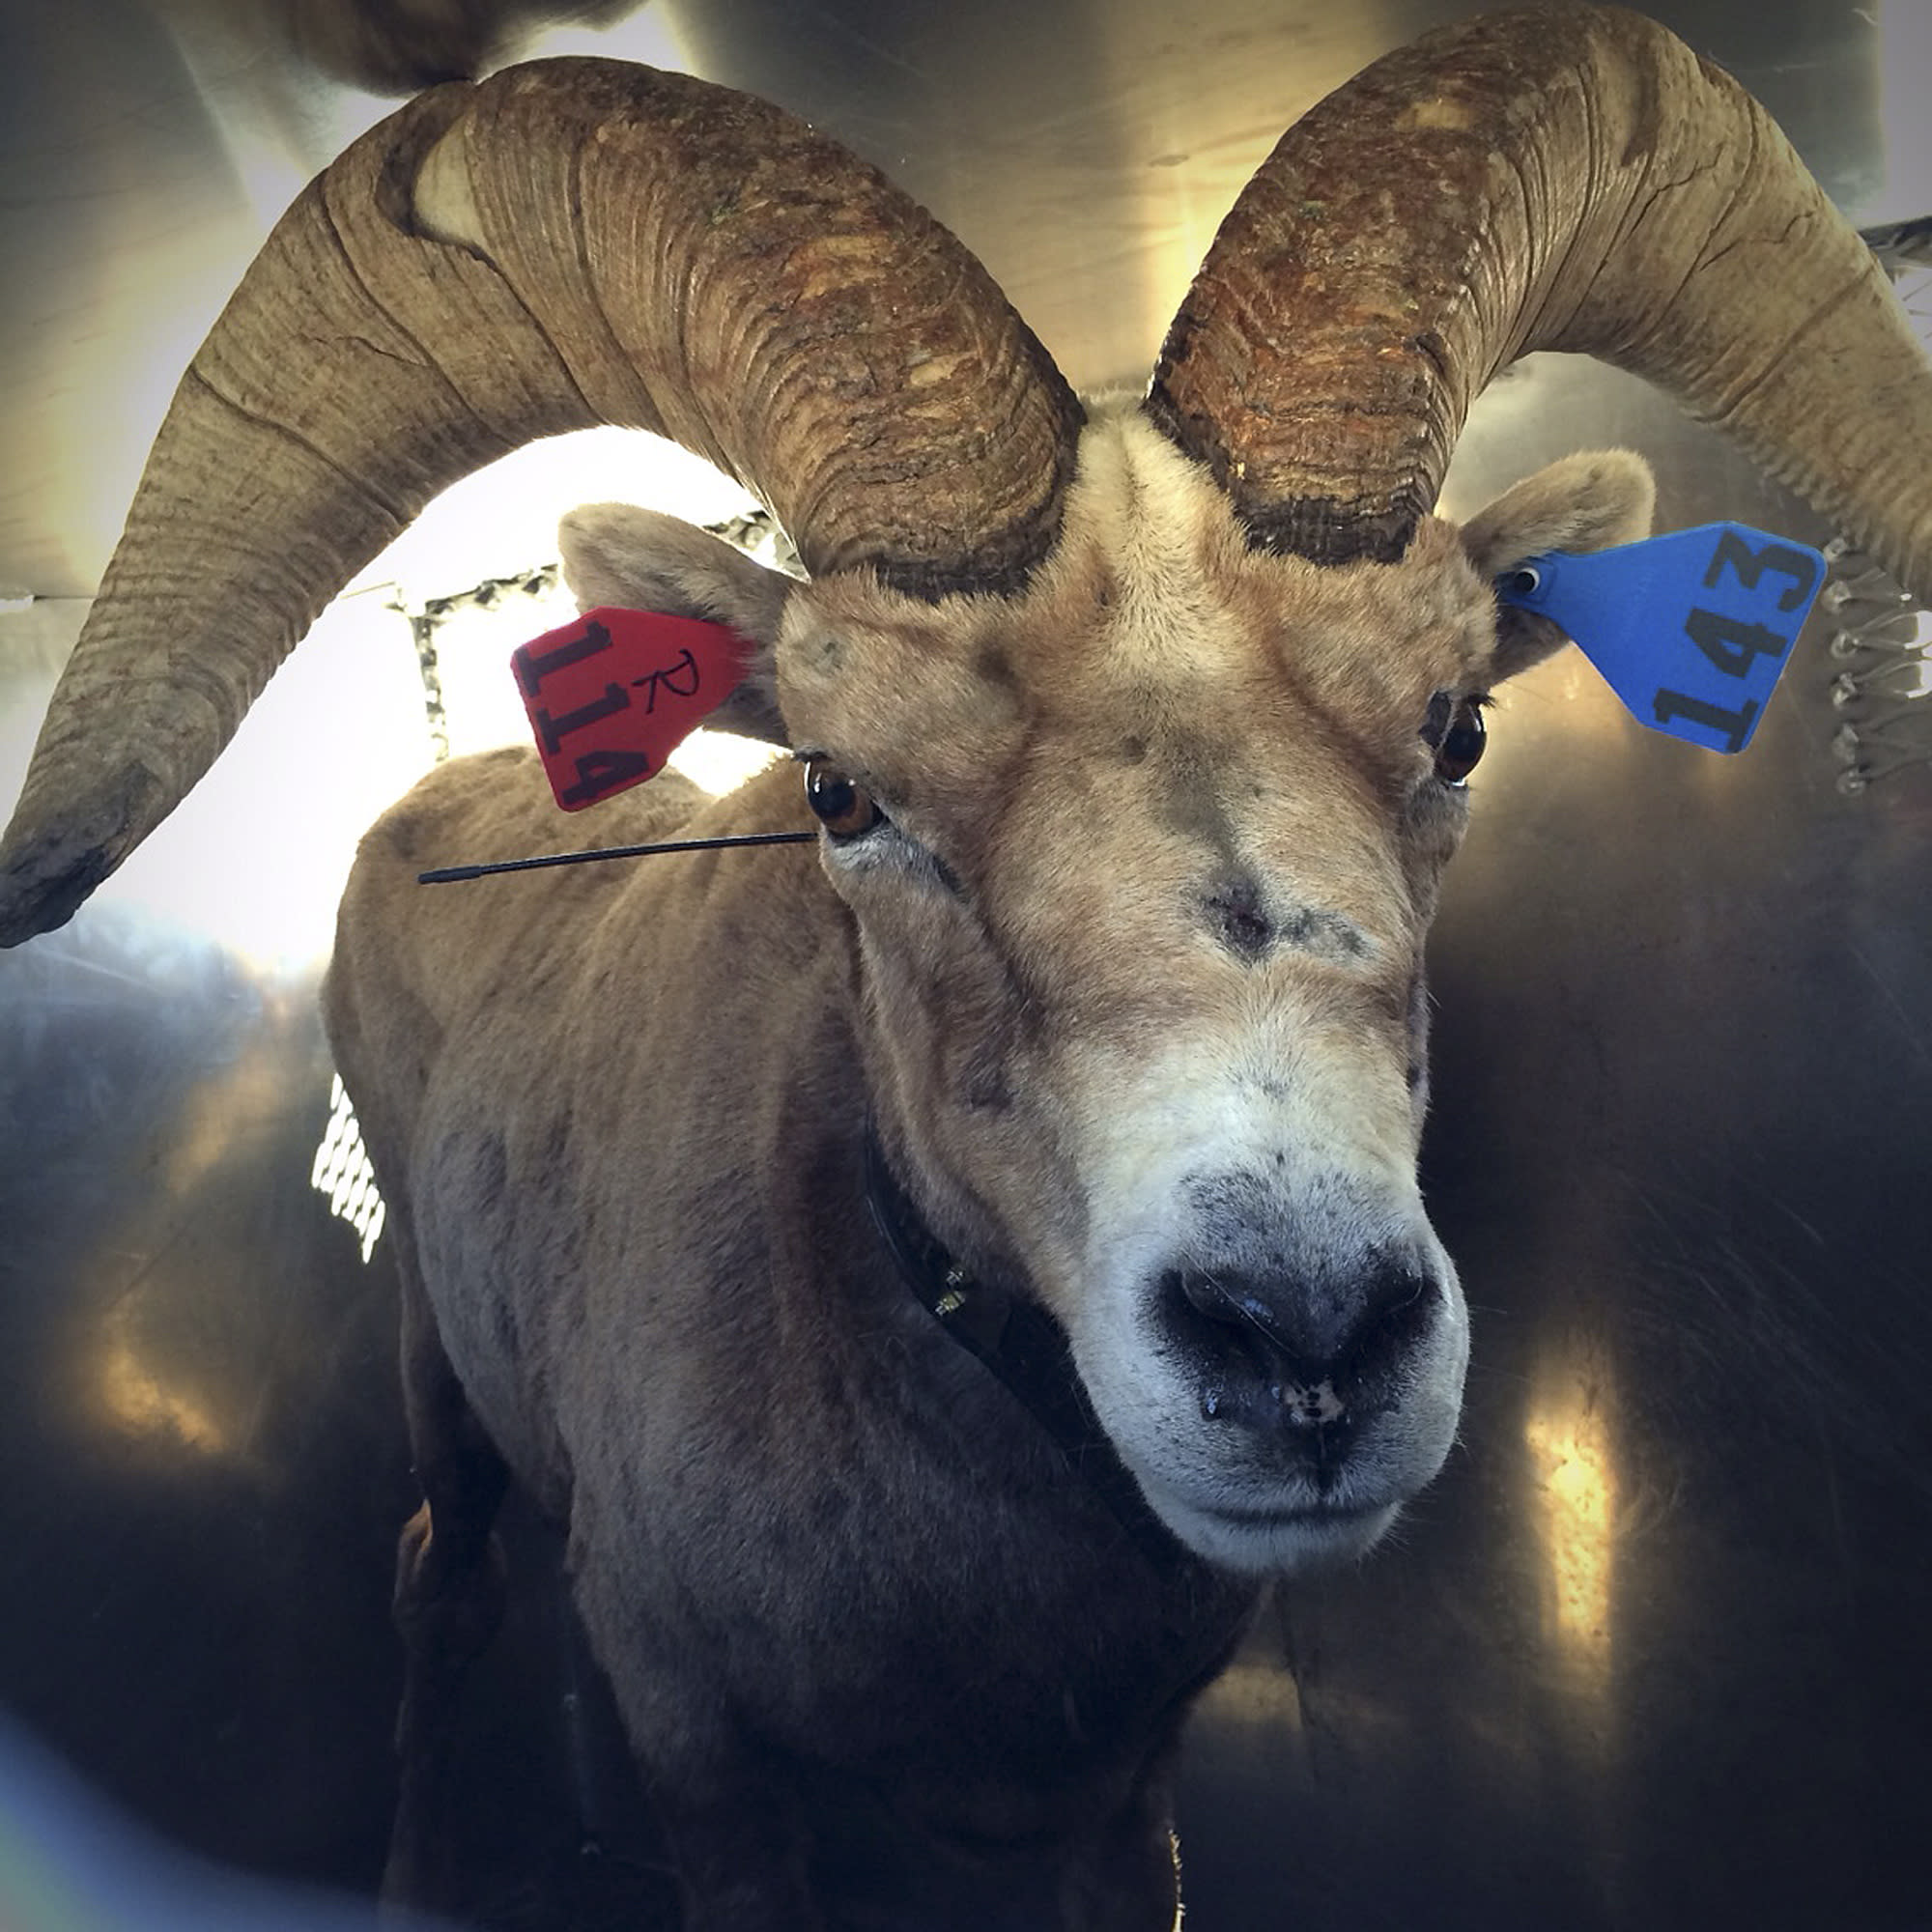 Endangered bighorn sheep moved to Yosemite, Sequoia parks